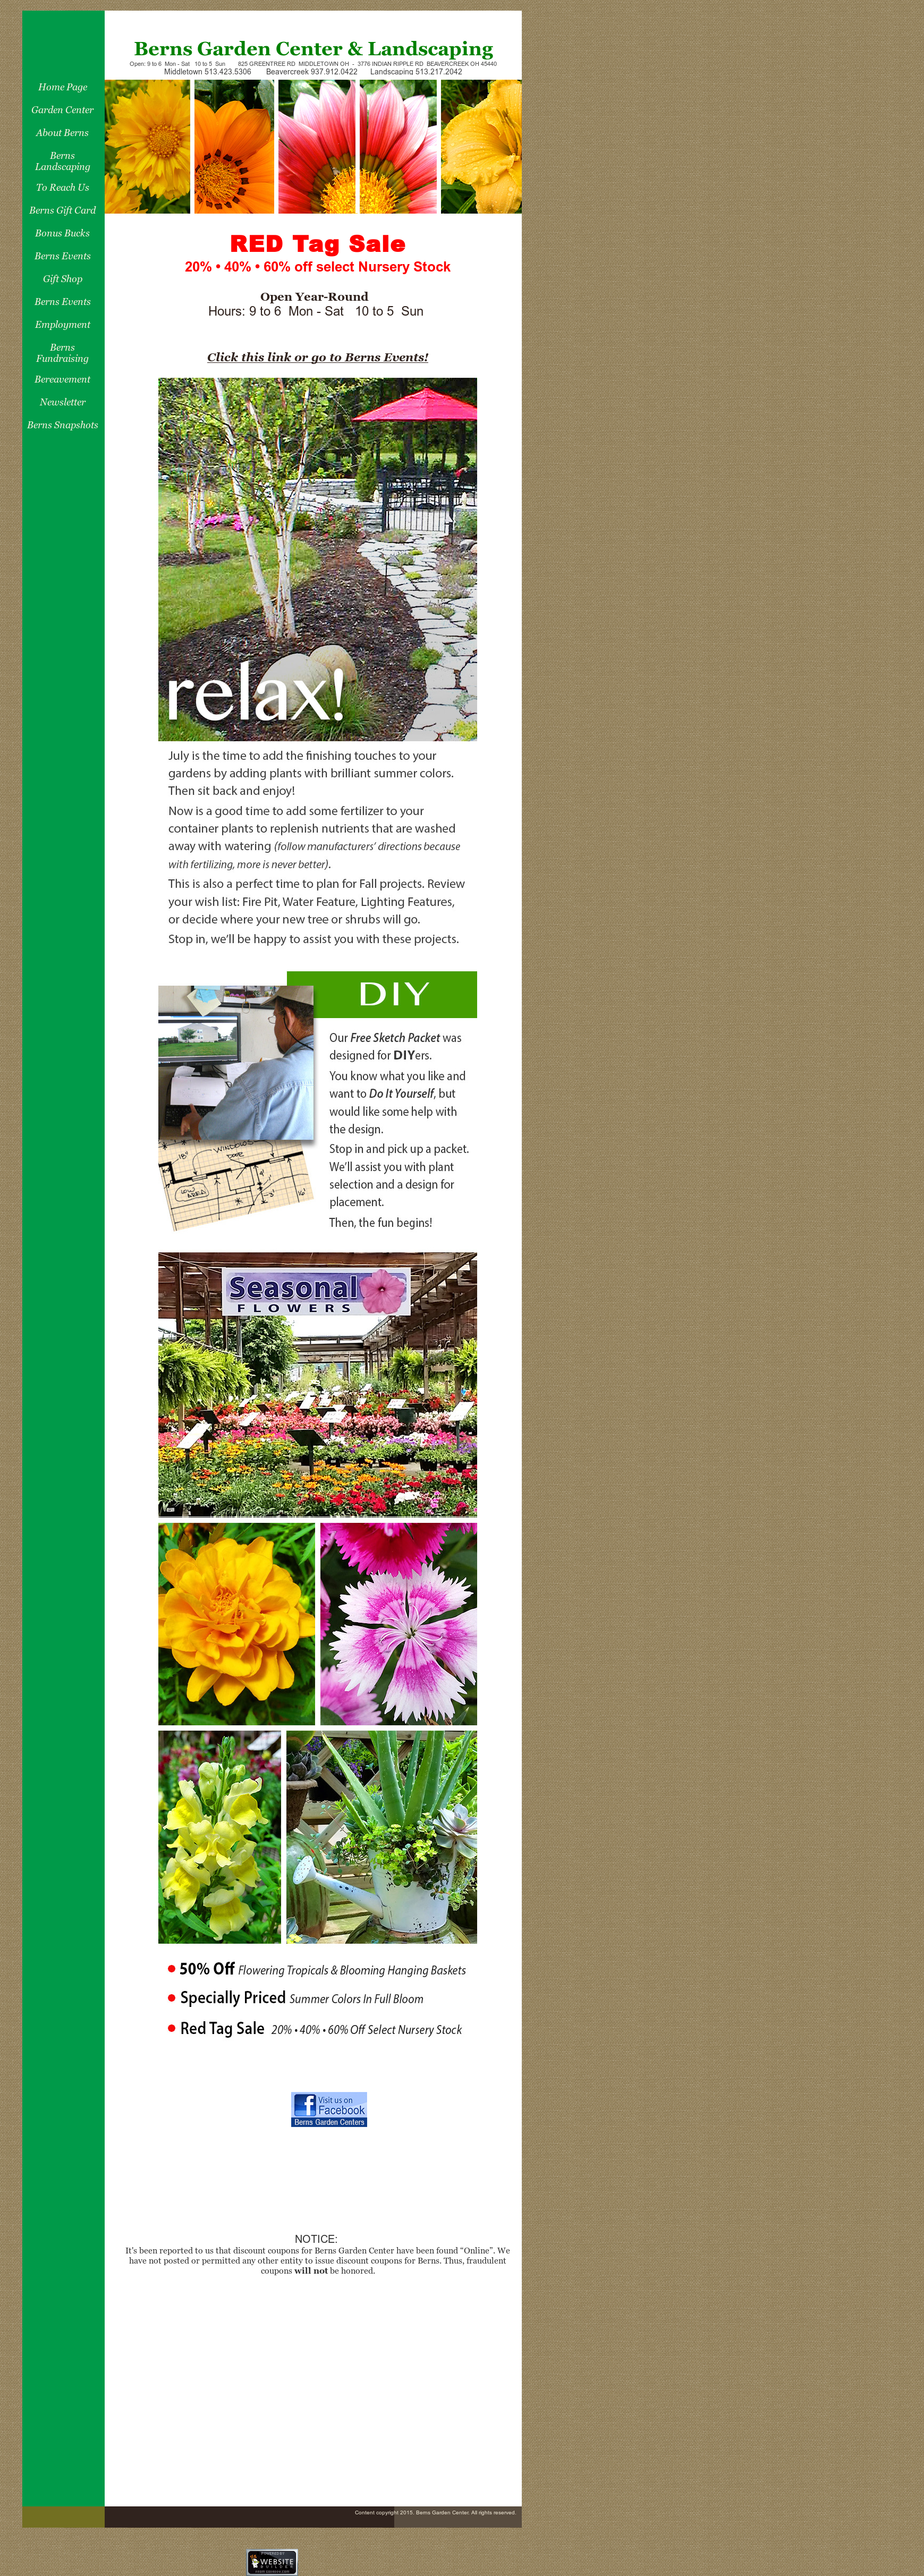 Berns Garden Center Competitors, Revenue and Employees - Owler ...